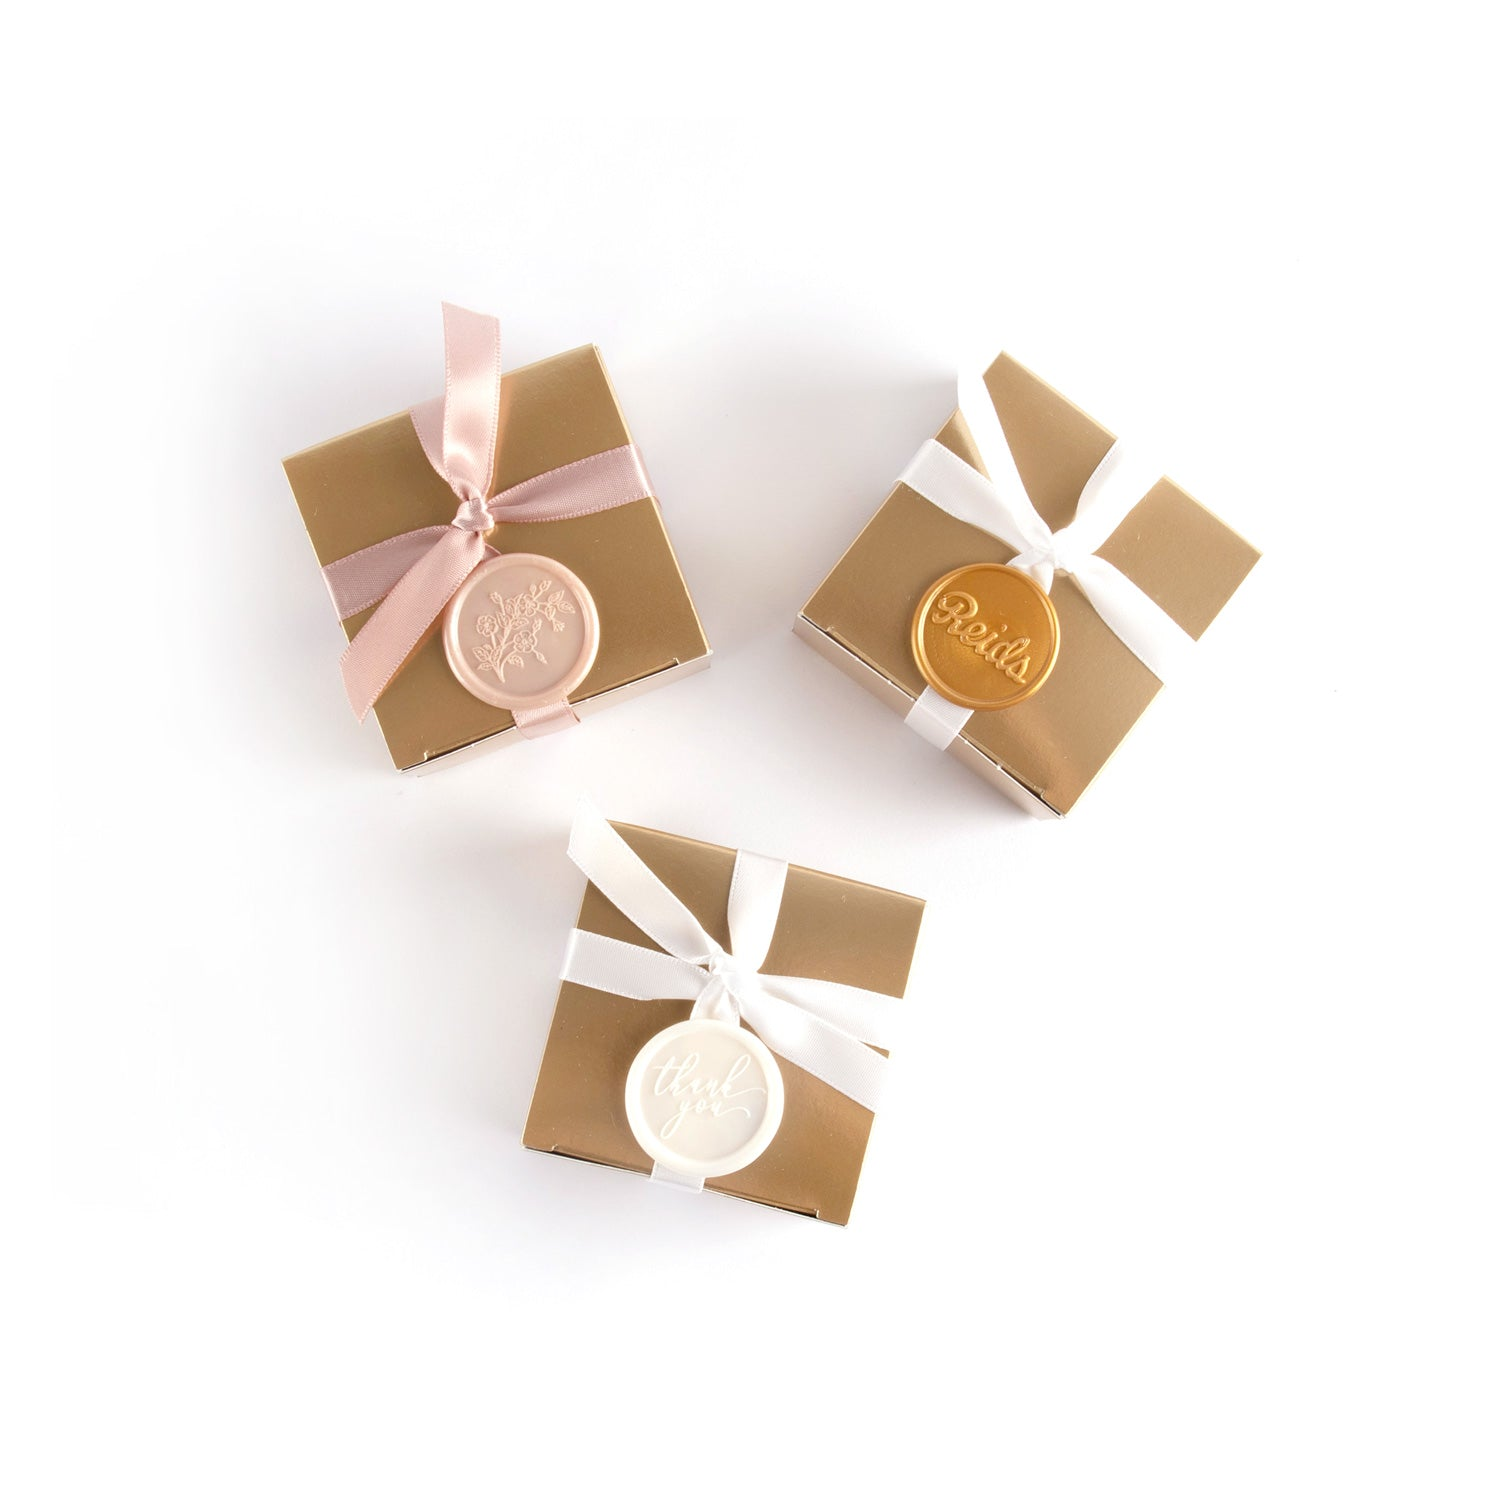 Product photo wax seal options. Pink floral, gold Reids or white thank you